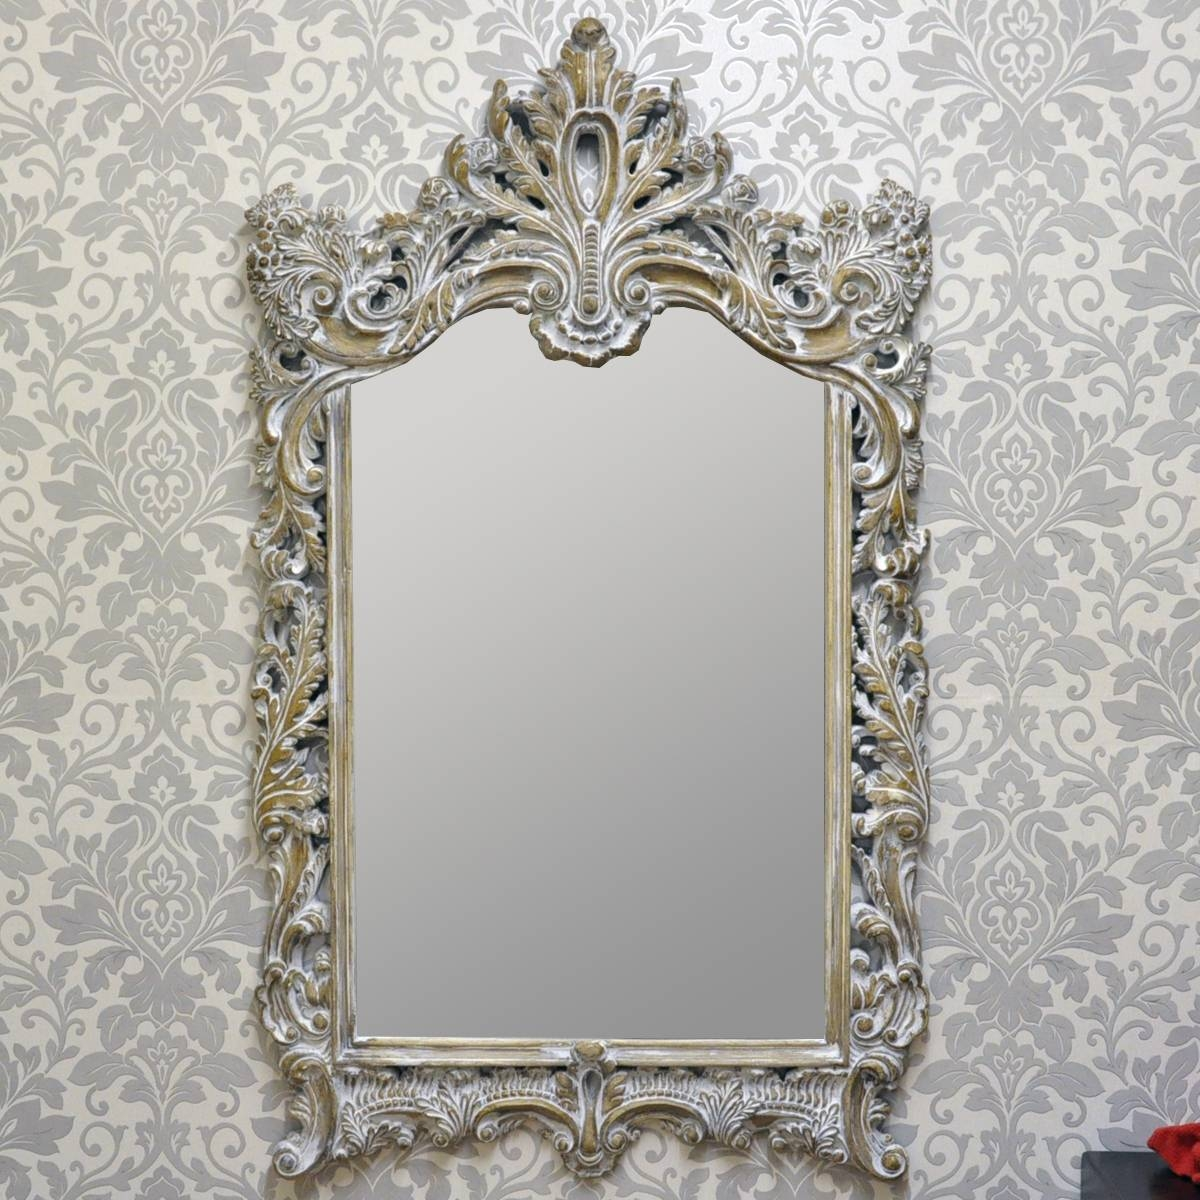 French Style Wall Mirror 47 Stunning Decor With French Style Long throughout Antique Style Wall Mirrors (Image 14 of 25)